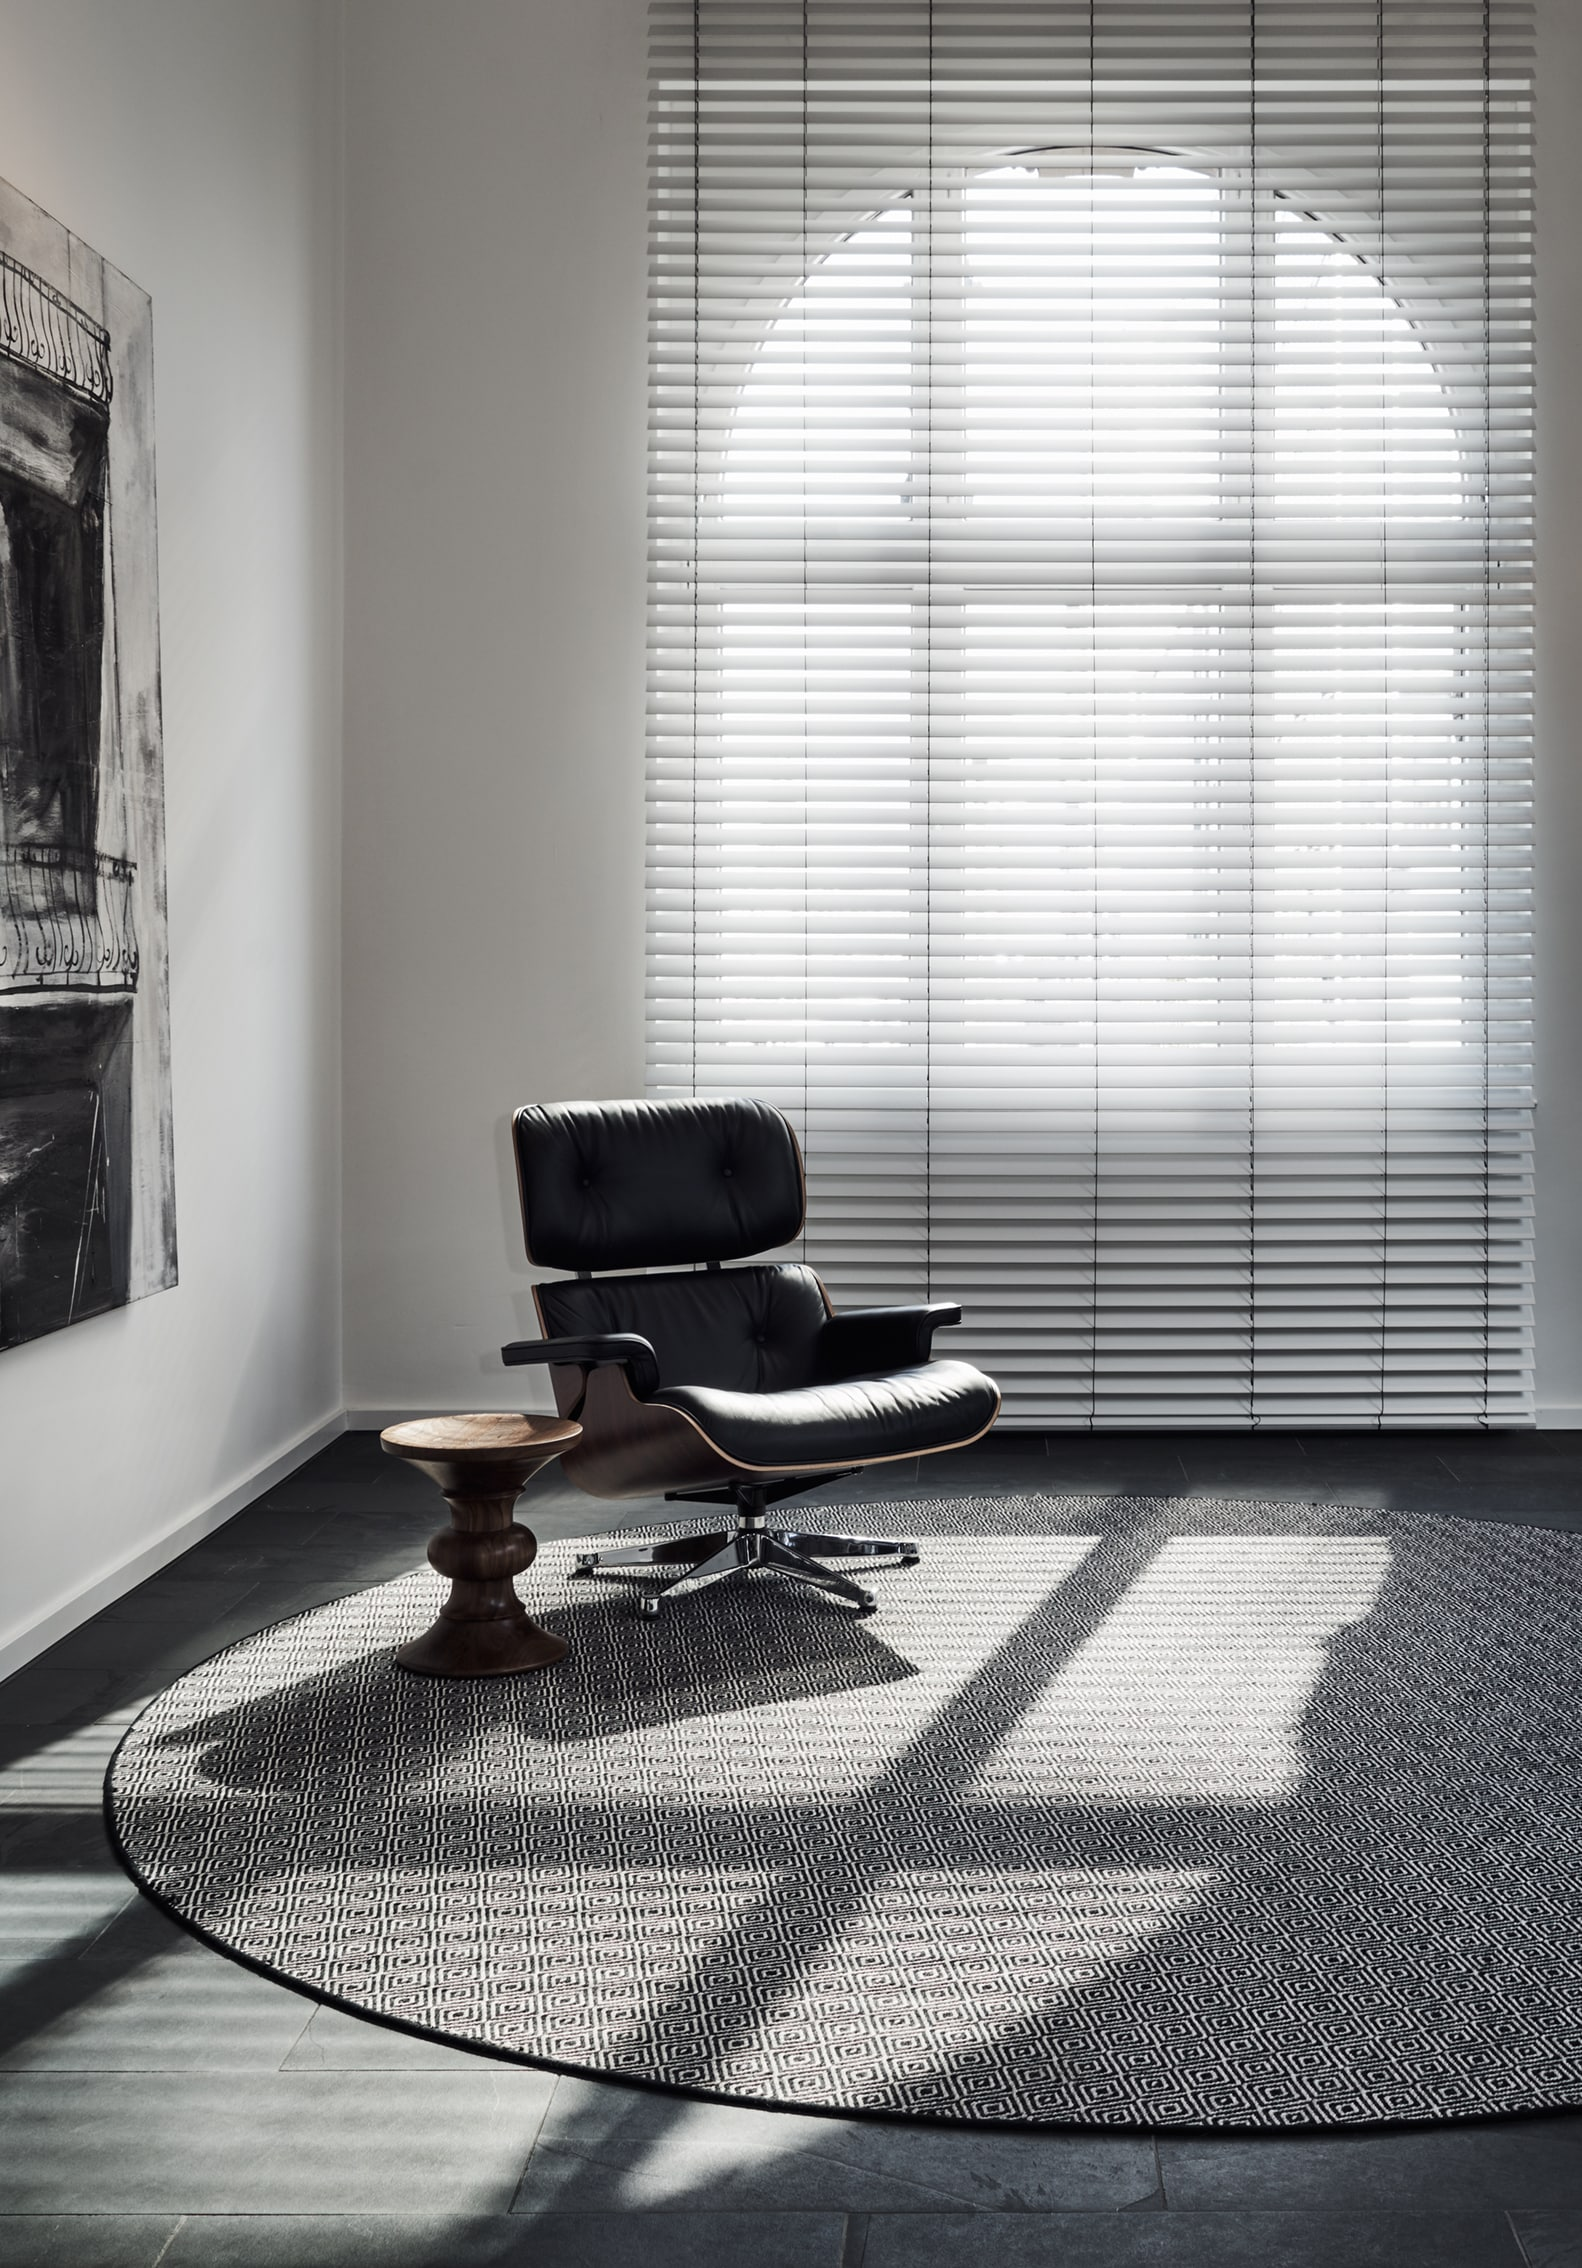 https://www.annidstein.com/en/collection/venetian-blinds/